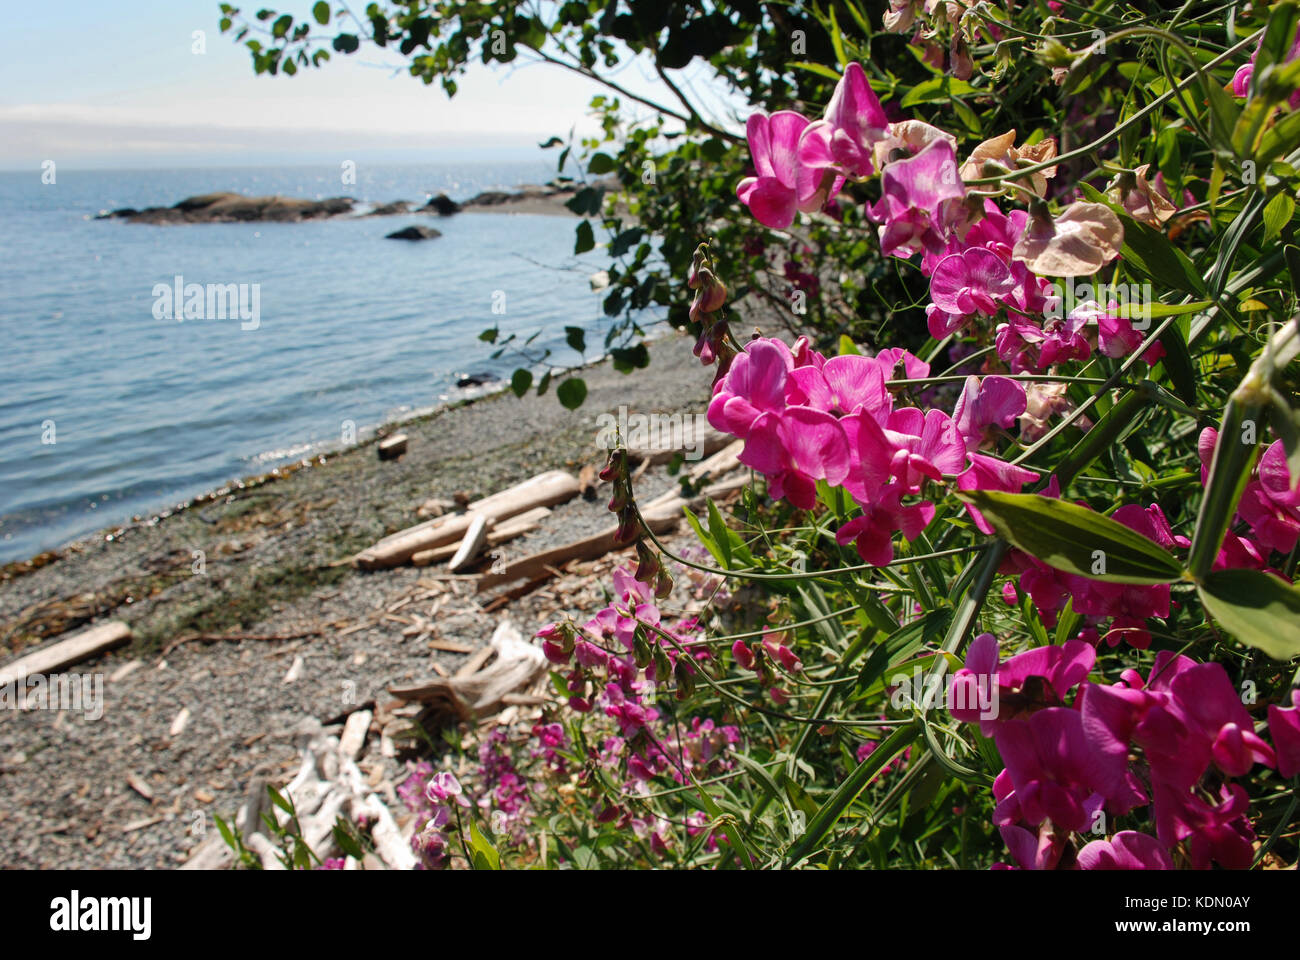 Sweetpeas growing near Victoria, BC waterfront - Stock Image